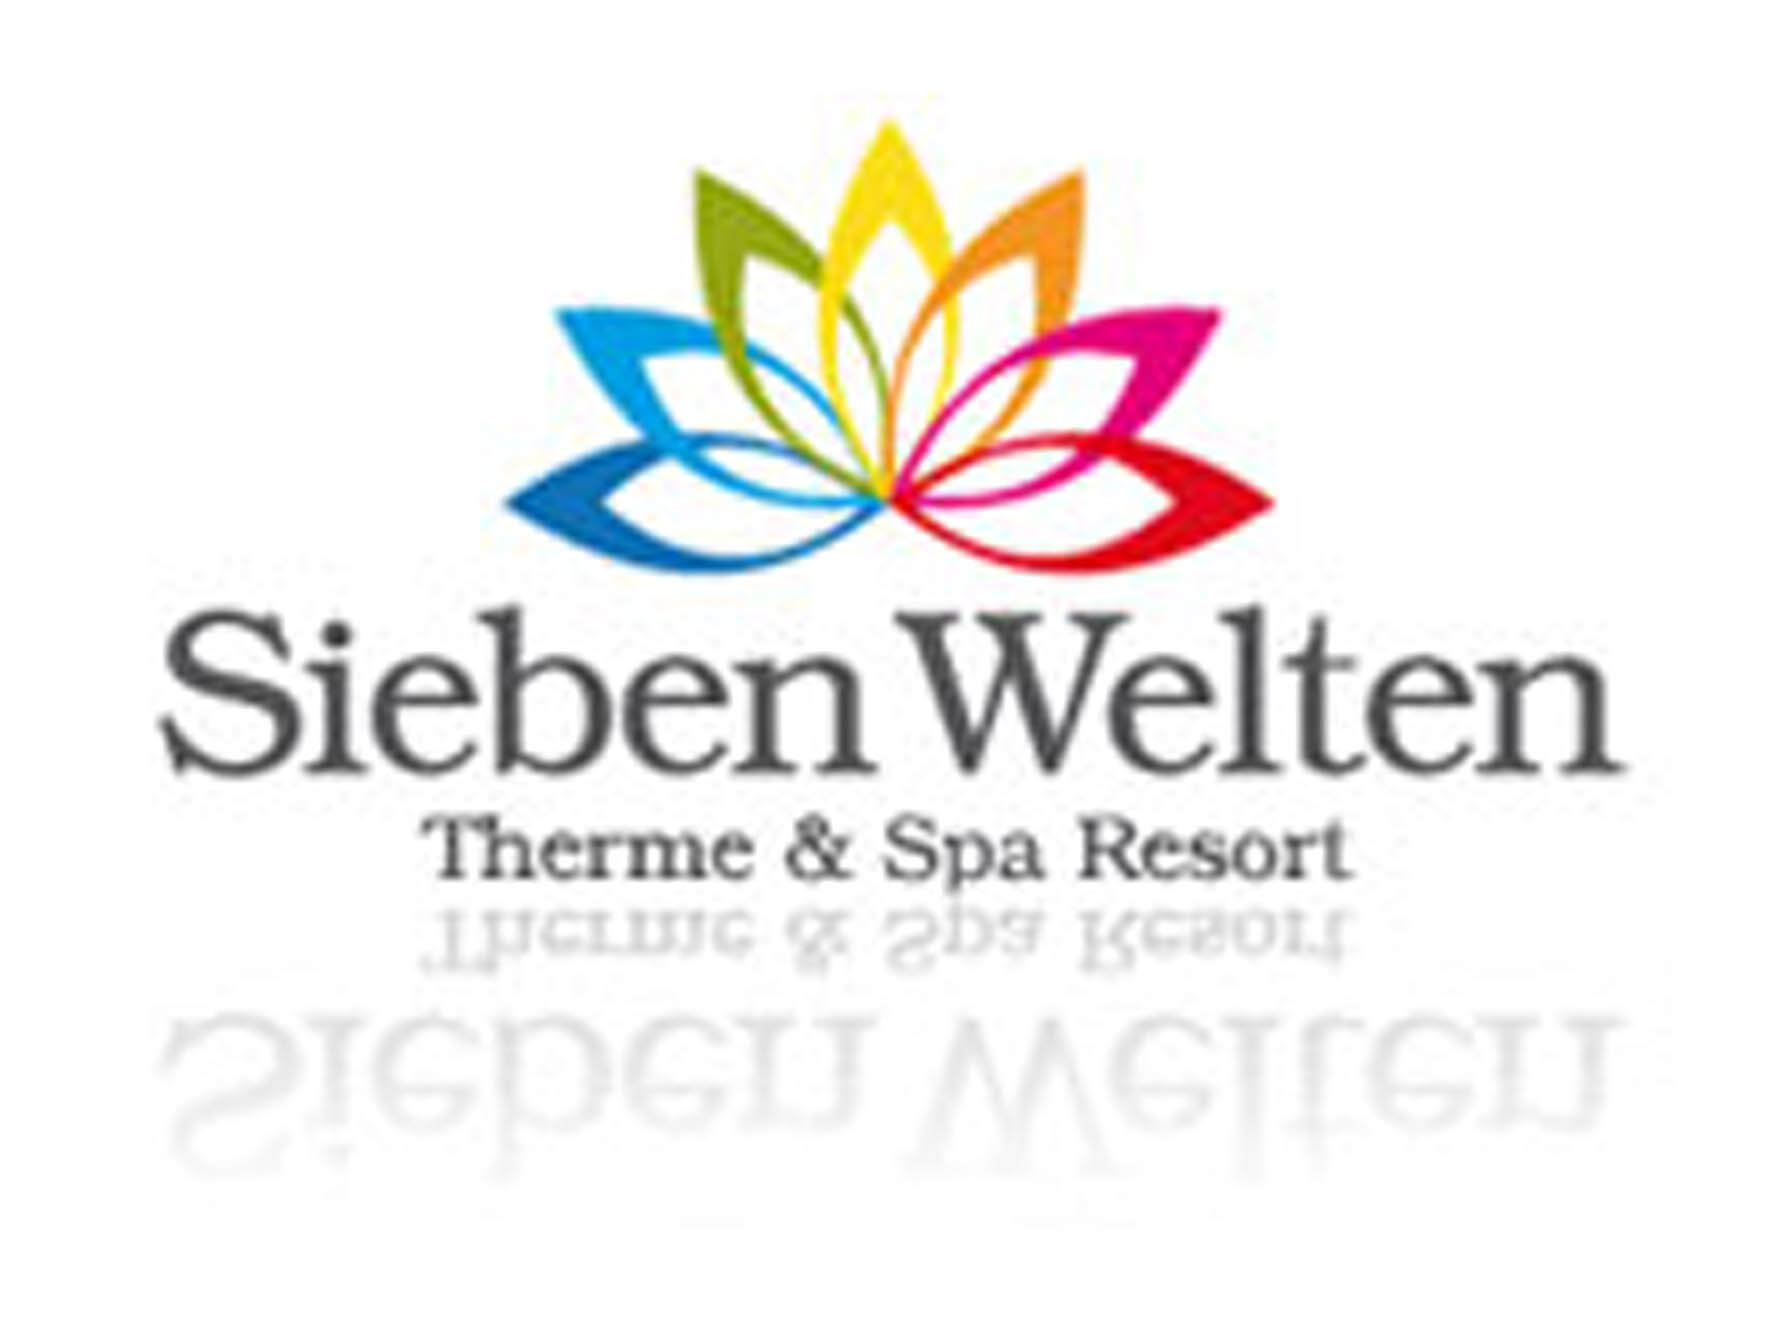 sieben welten therme spa. Black Bedroom Furniture Sets. Home Design Ideas